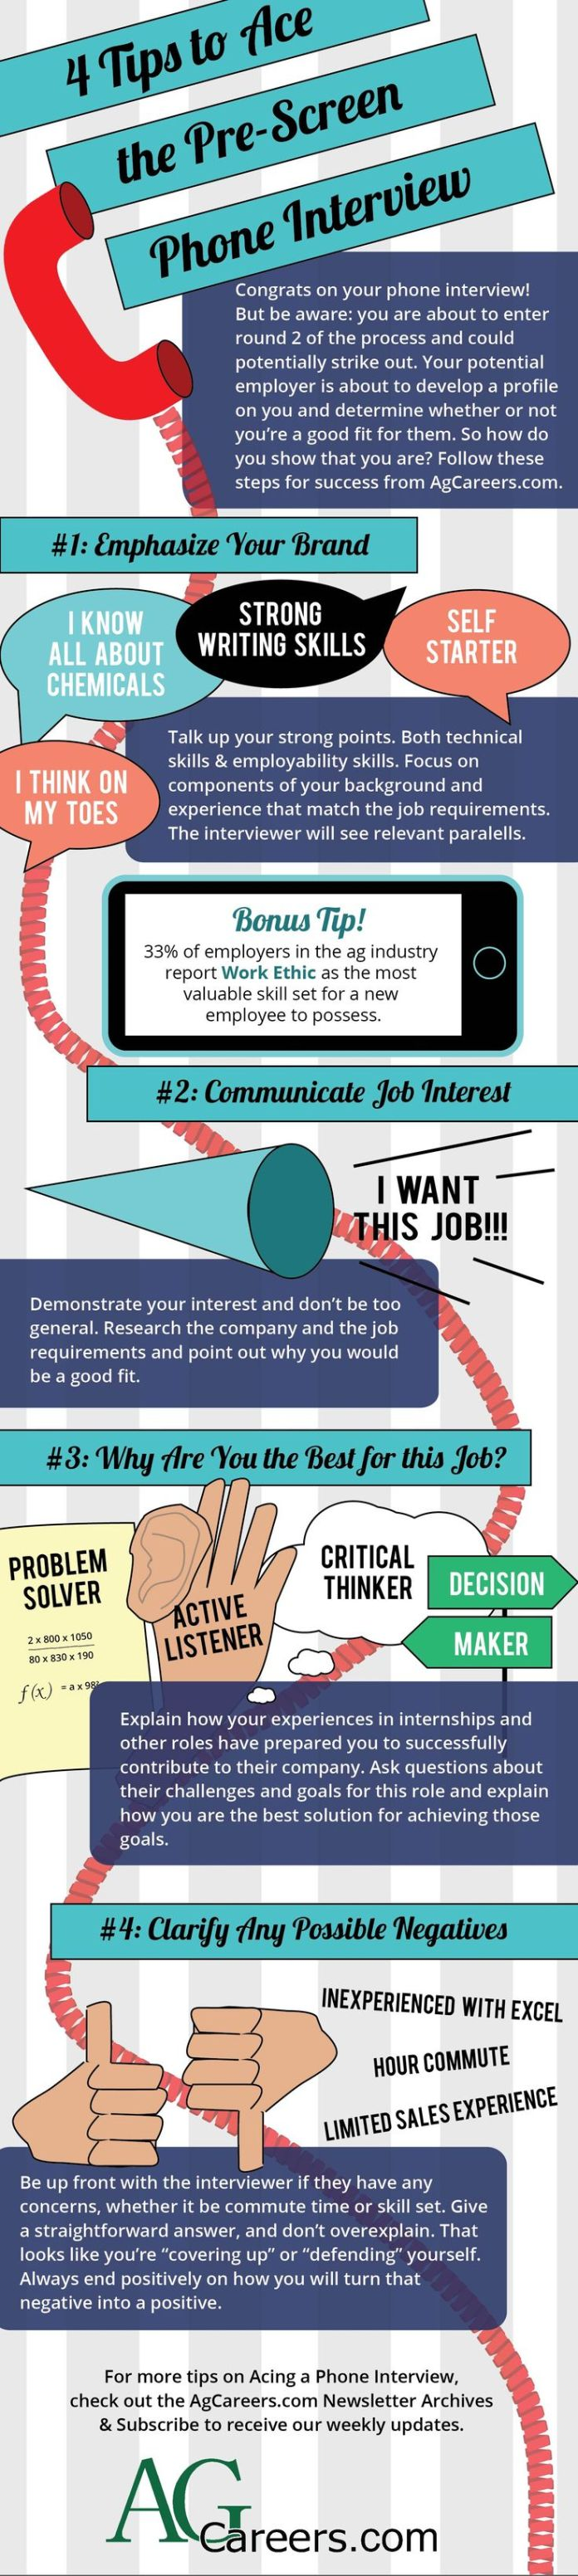 Graphic Design Phone Interview Tips